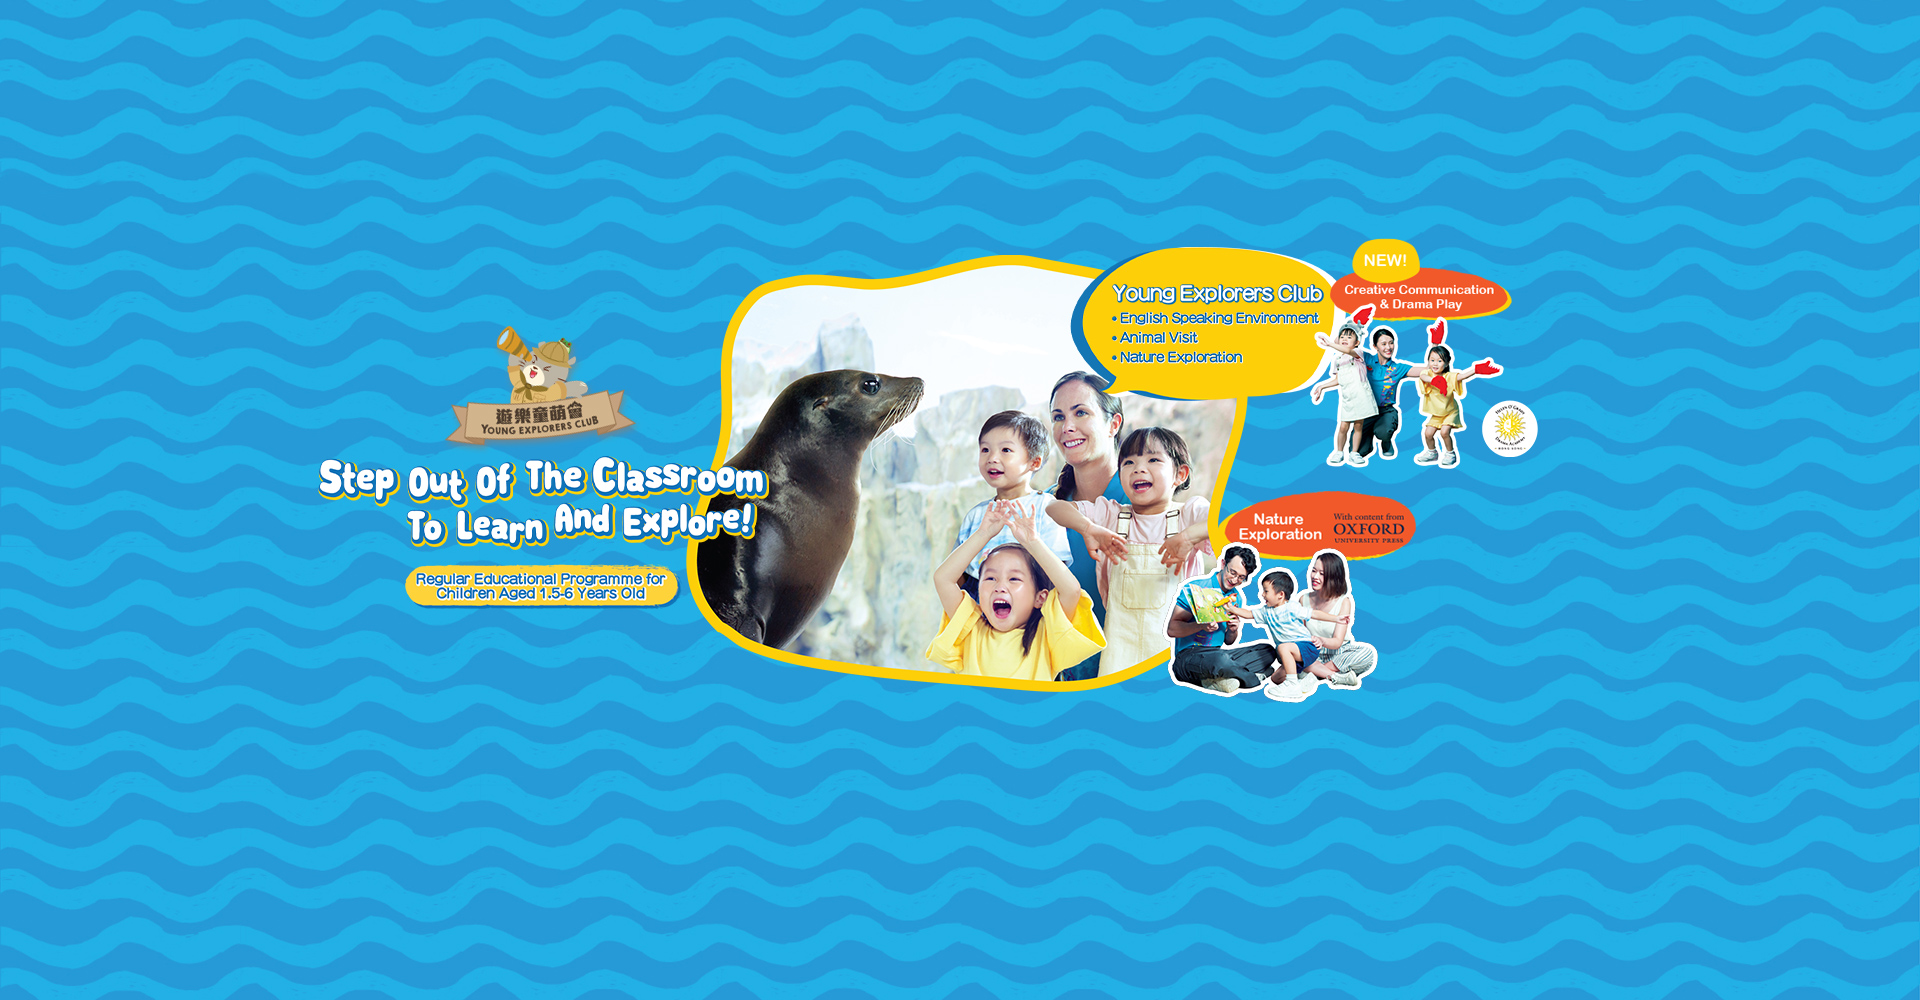 https://media.oceanpark.com.hk/files/s3fs-public/inside_banner01_desktop_en_1.jpg